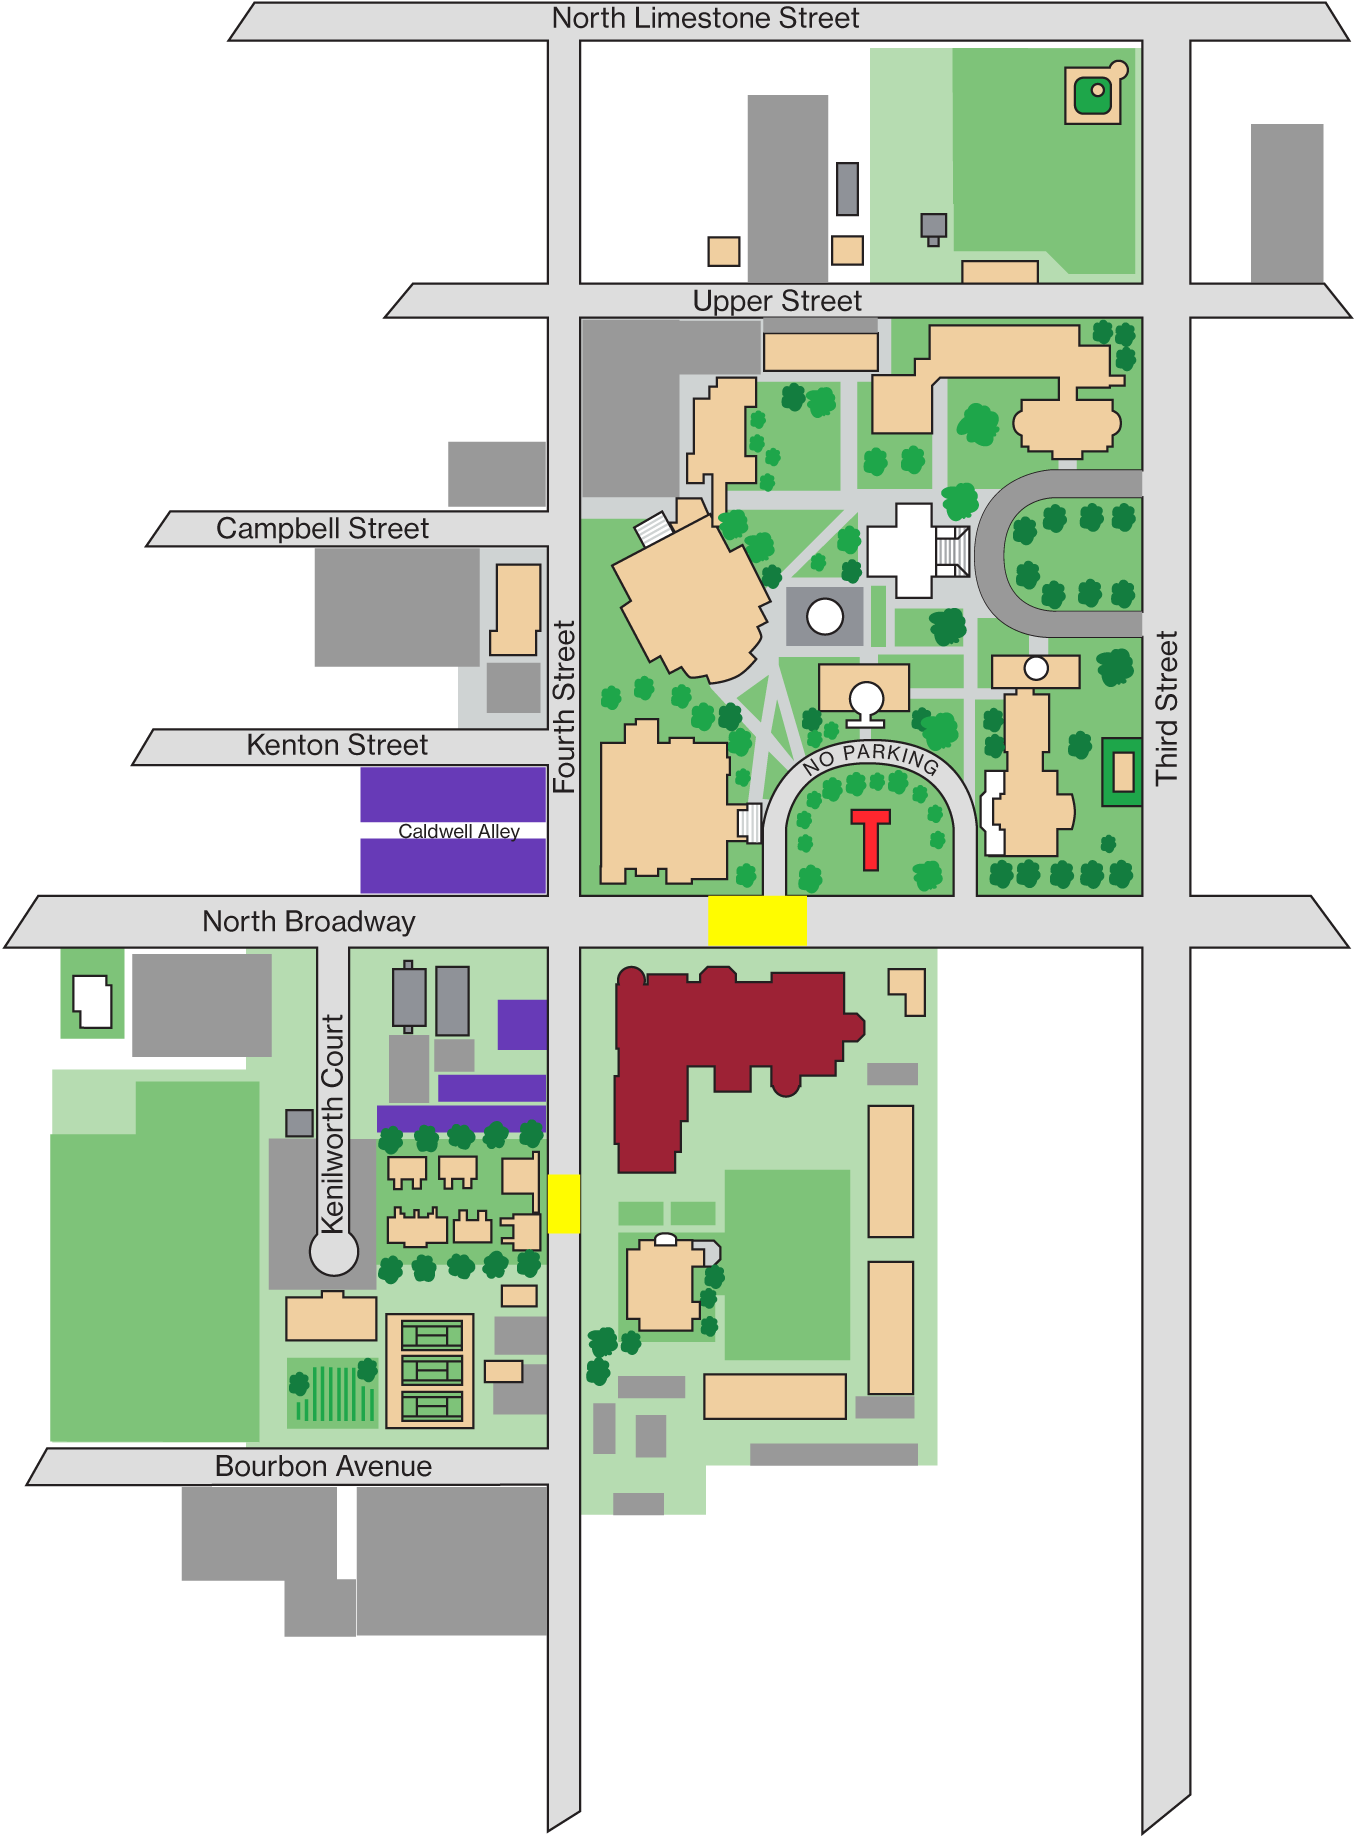 Map showing location of campus center plus adjacent parking and crosswalks